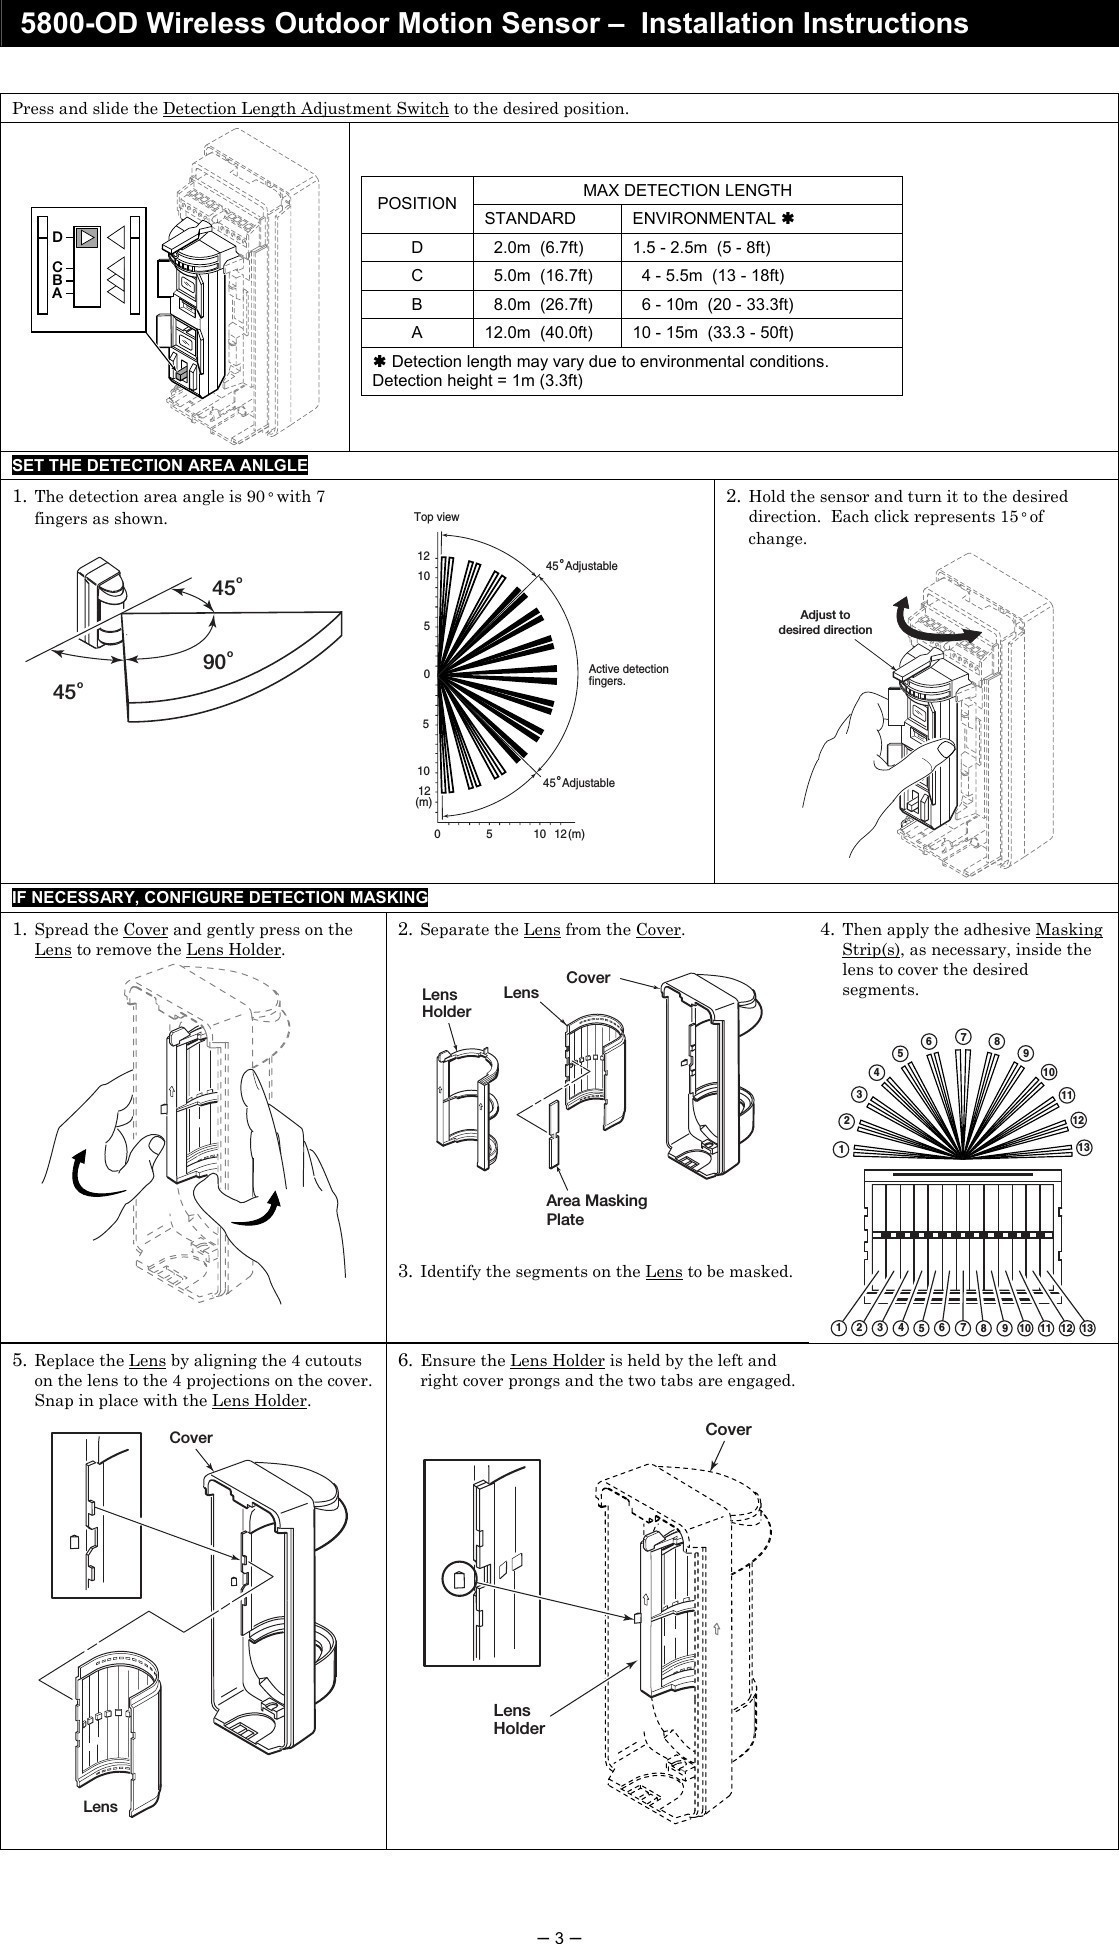 Wiring Diagram for Outdoor Security Light Awesome Wiring Diagram for Home Alarm Valid Wiring Diagram for